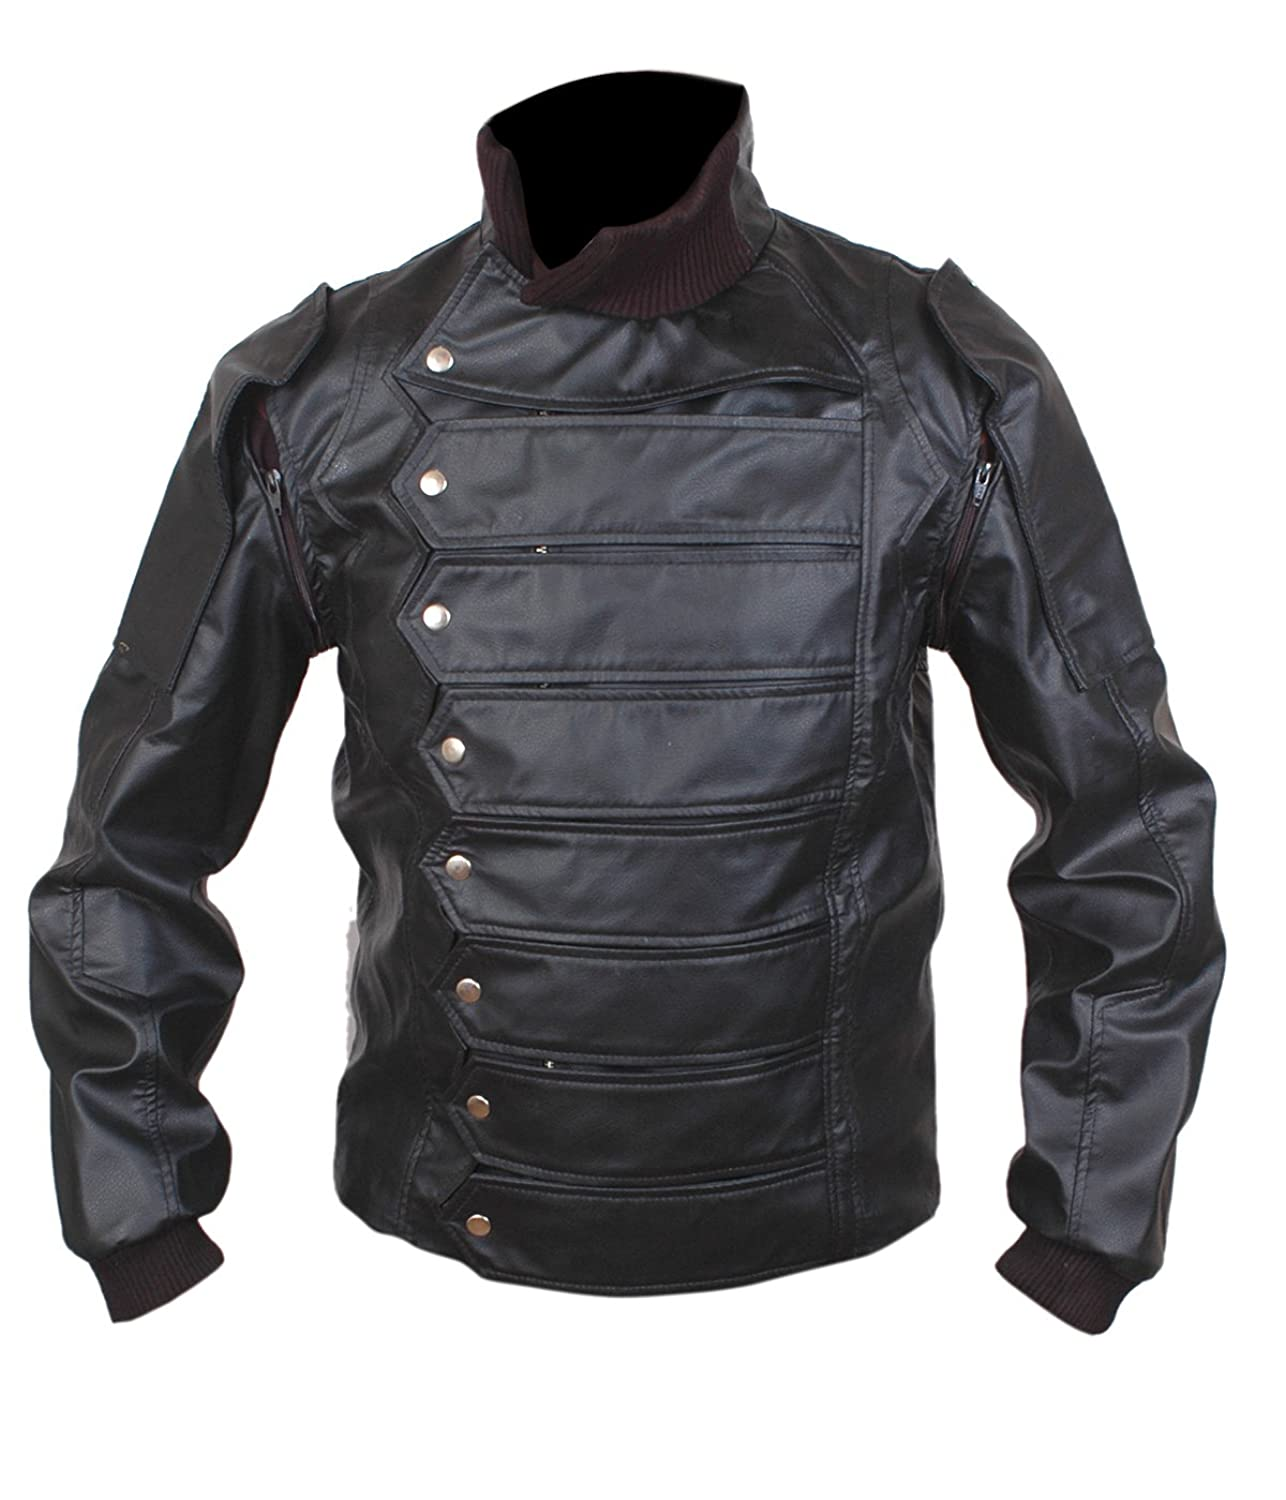 Leather jacket cost - Low Cost Captain America The Winter Soldier Bucky Barnes Leather Jacket